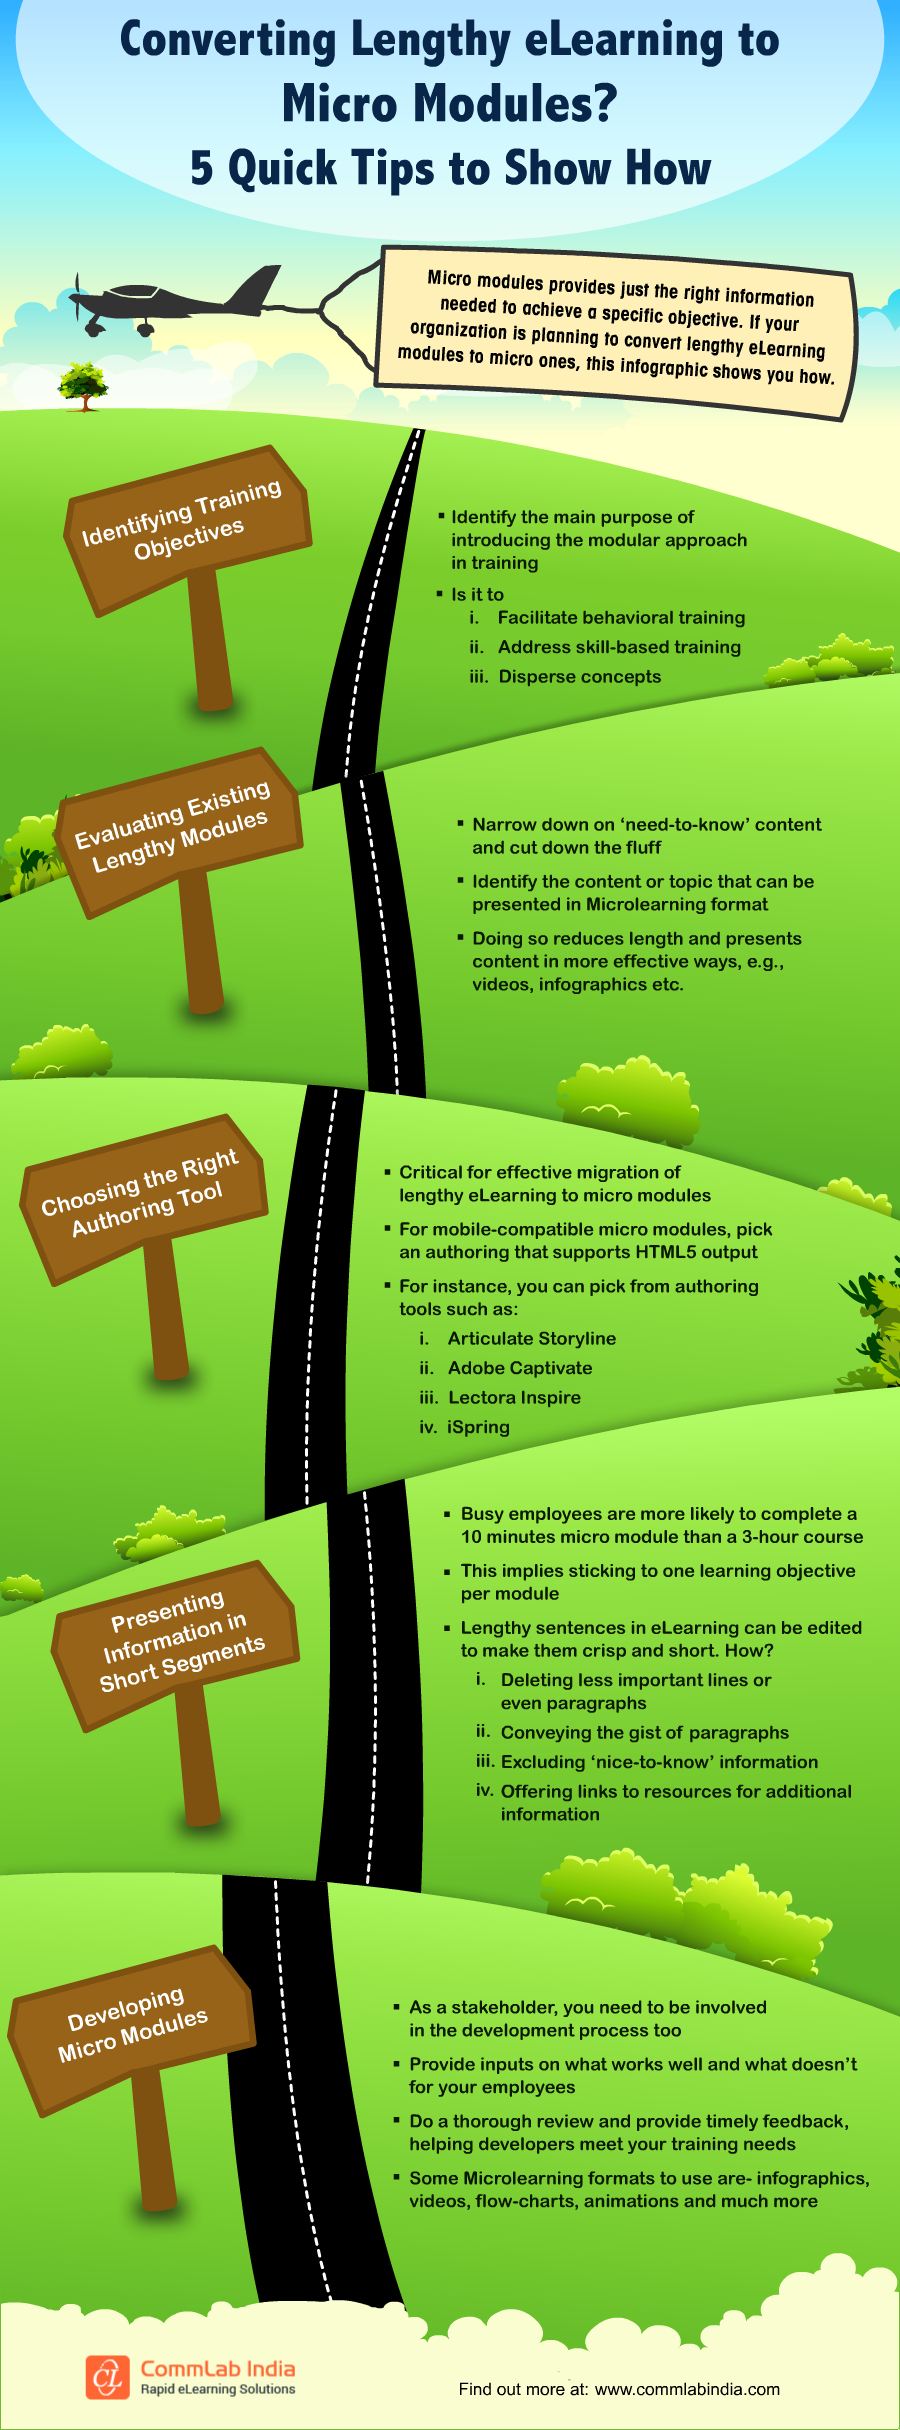 Converting Lengthy eLearning to Micro Modules? 5 Quick Tips to Show How [Infographic]